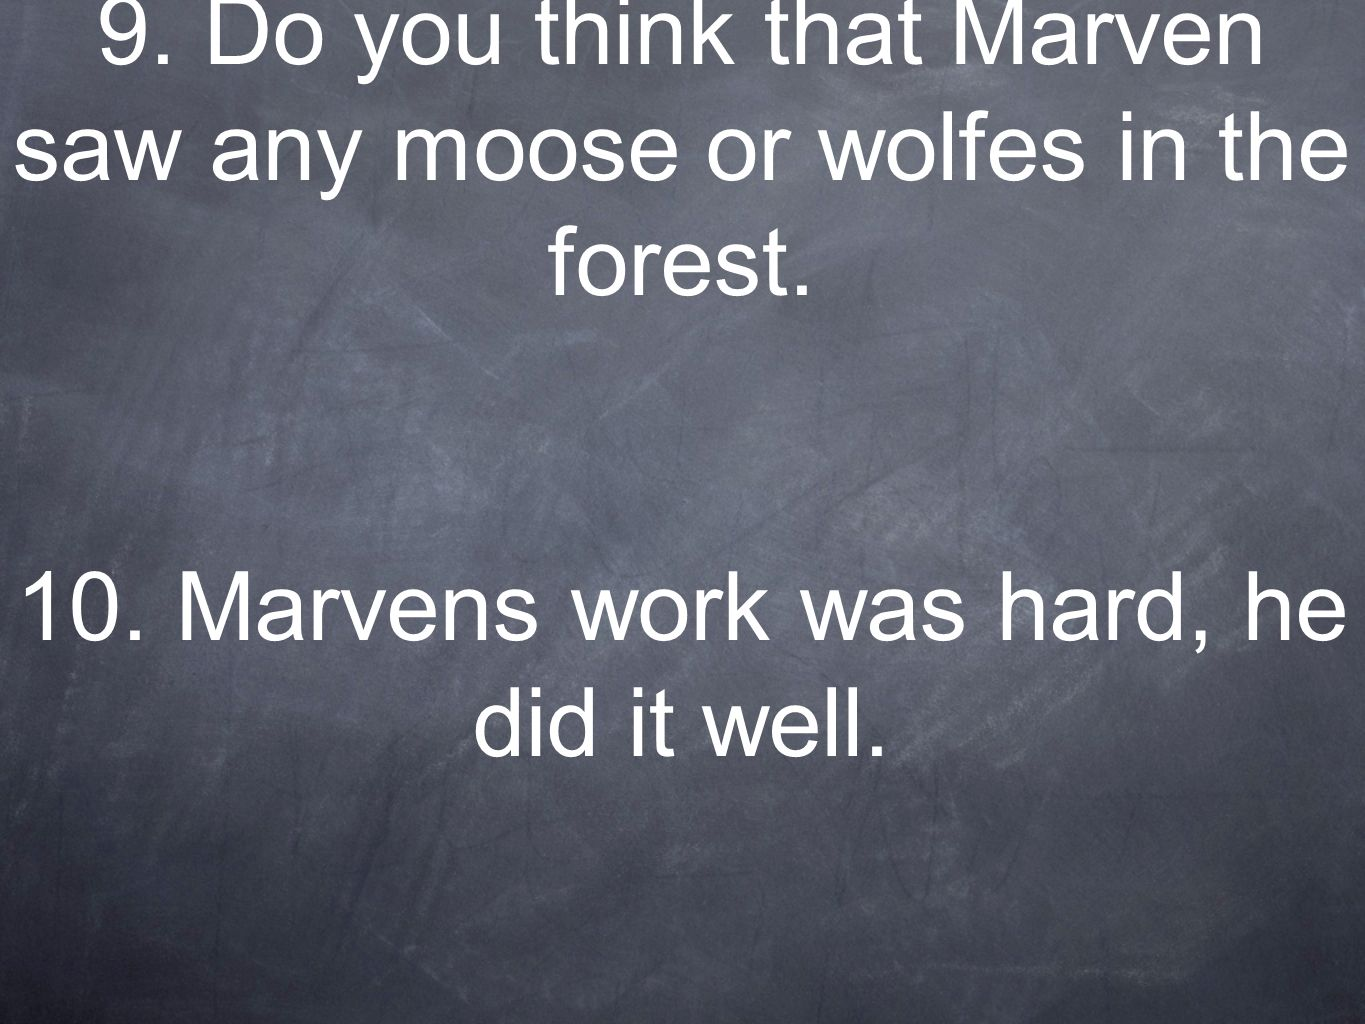 9. Do you think that Marven saw any moose or wolfes in the forest. 10. Marvens work was hard, he did it well.